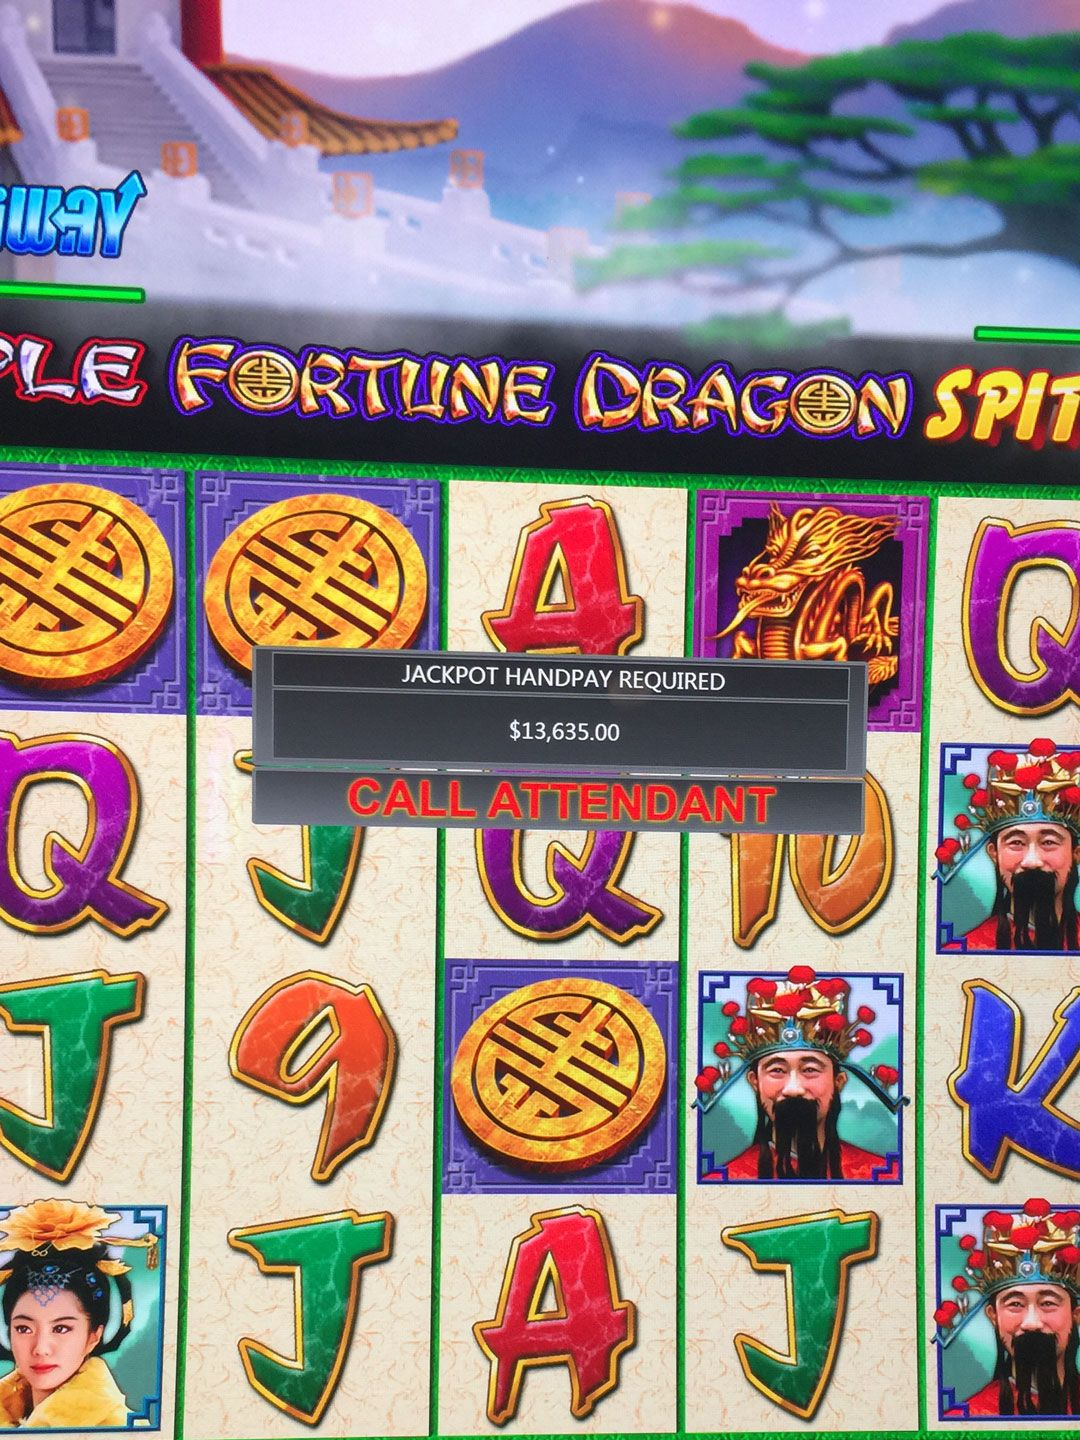 Congratulations to our lucky guest who took home 13635